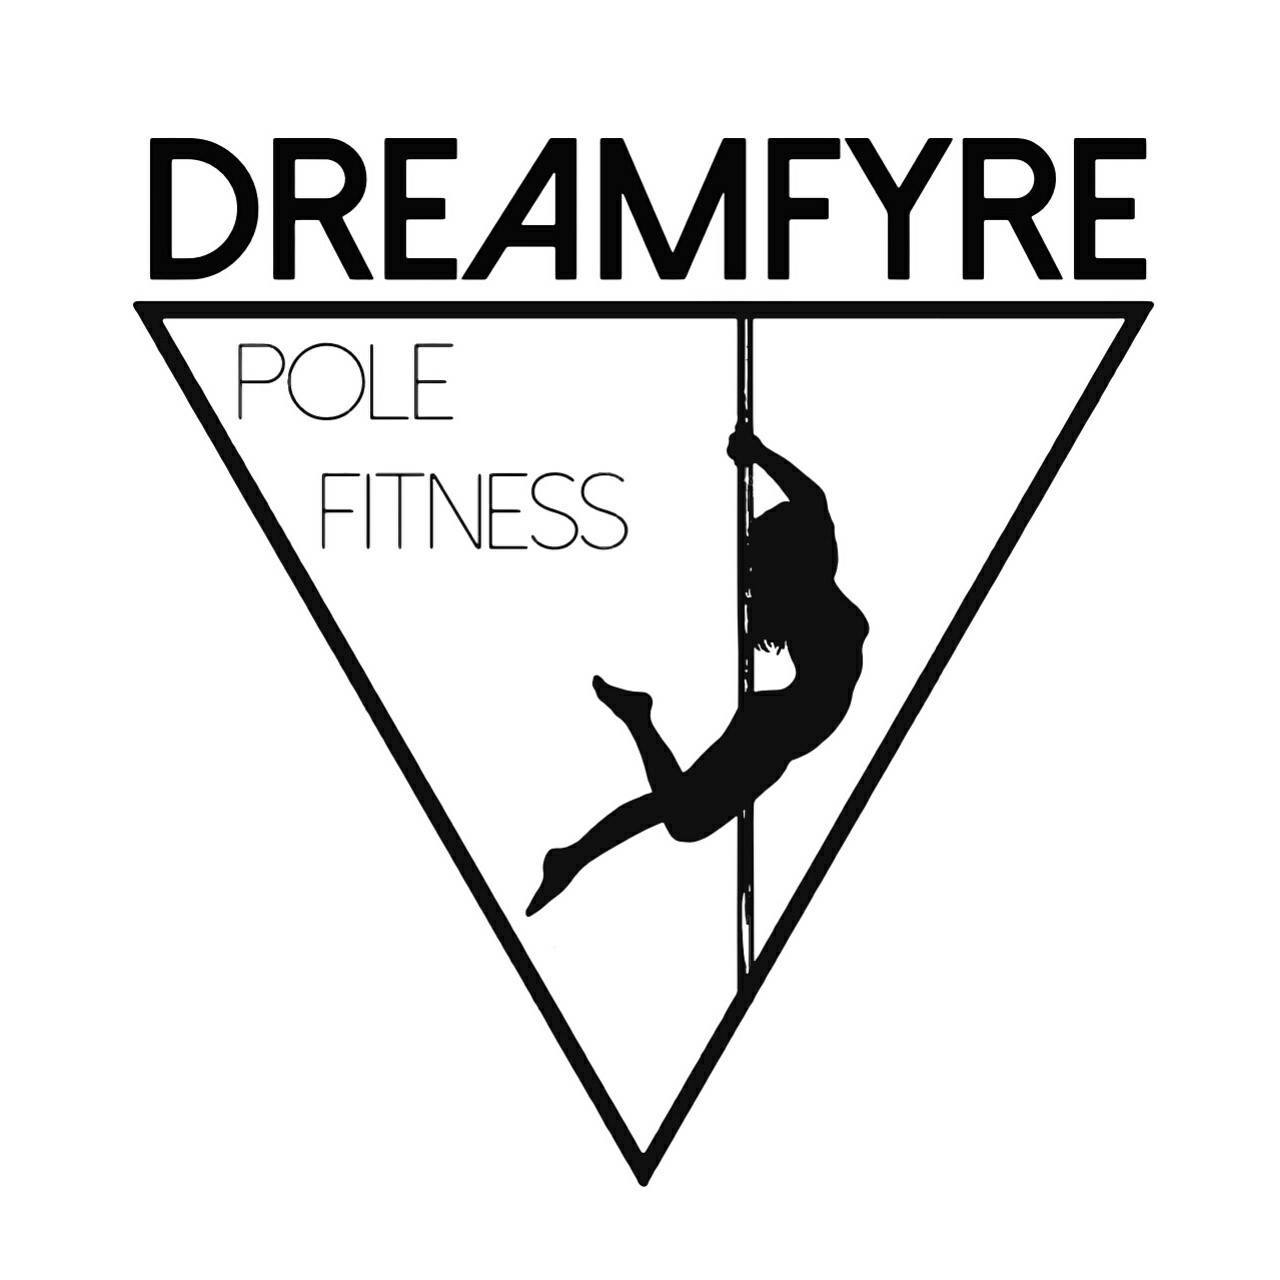 DreamFyre Pole Fitness & Jena Clough